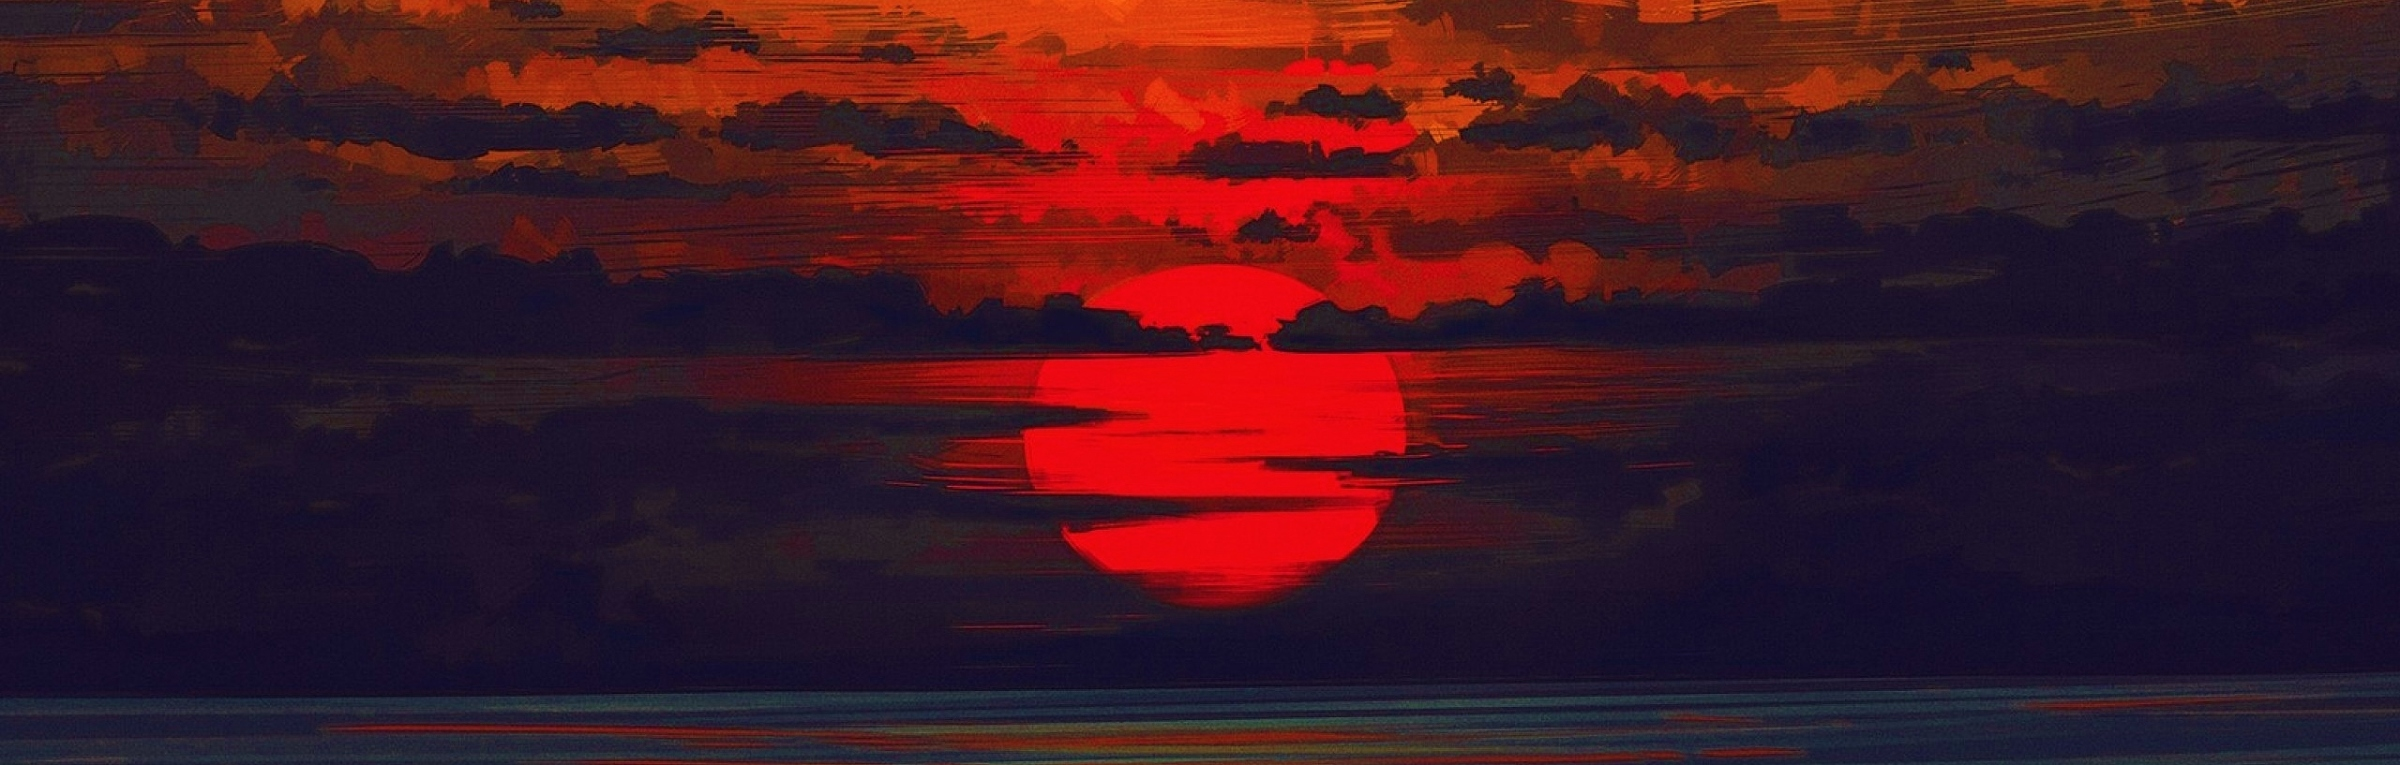 sunset-painting-clouds-sea